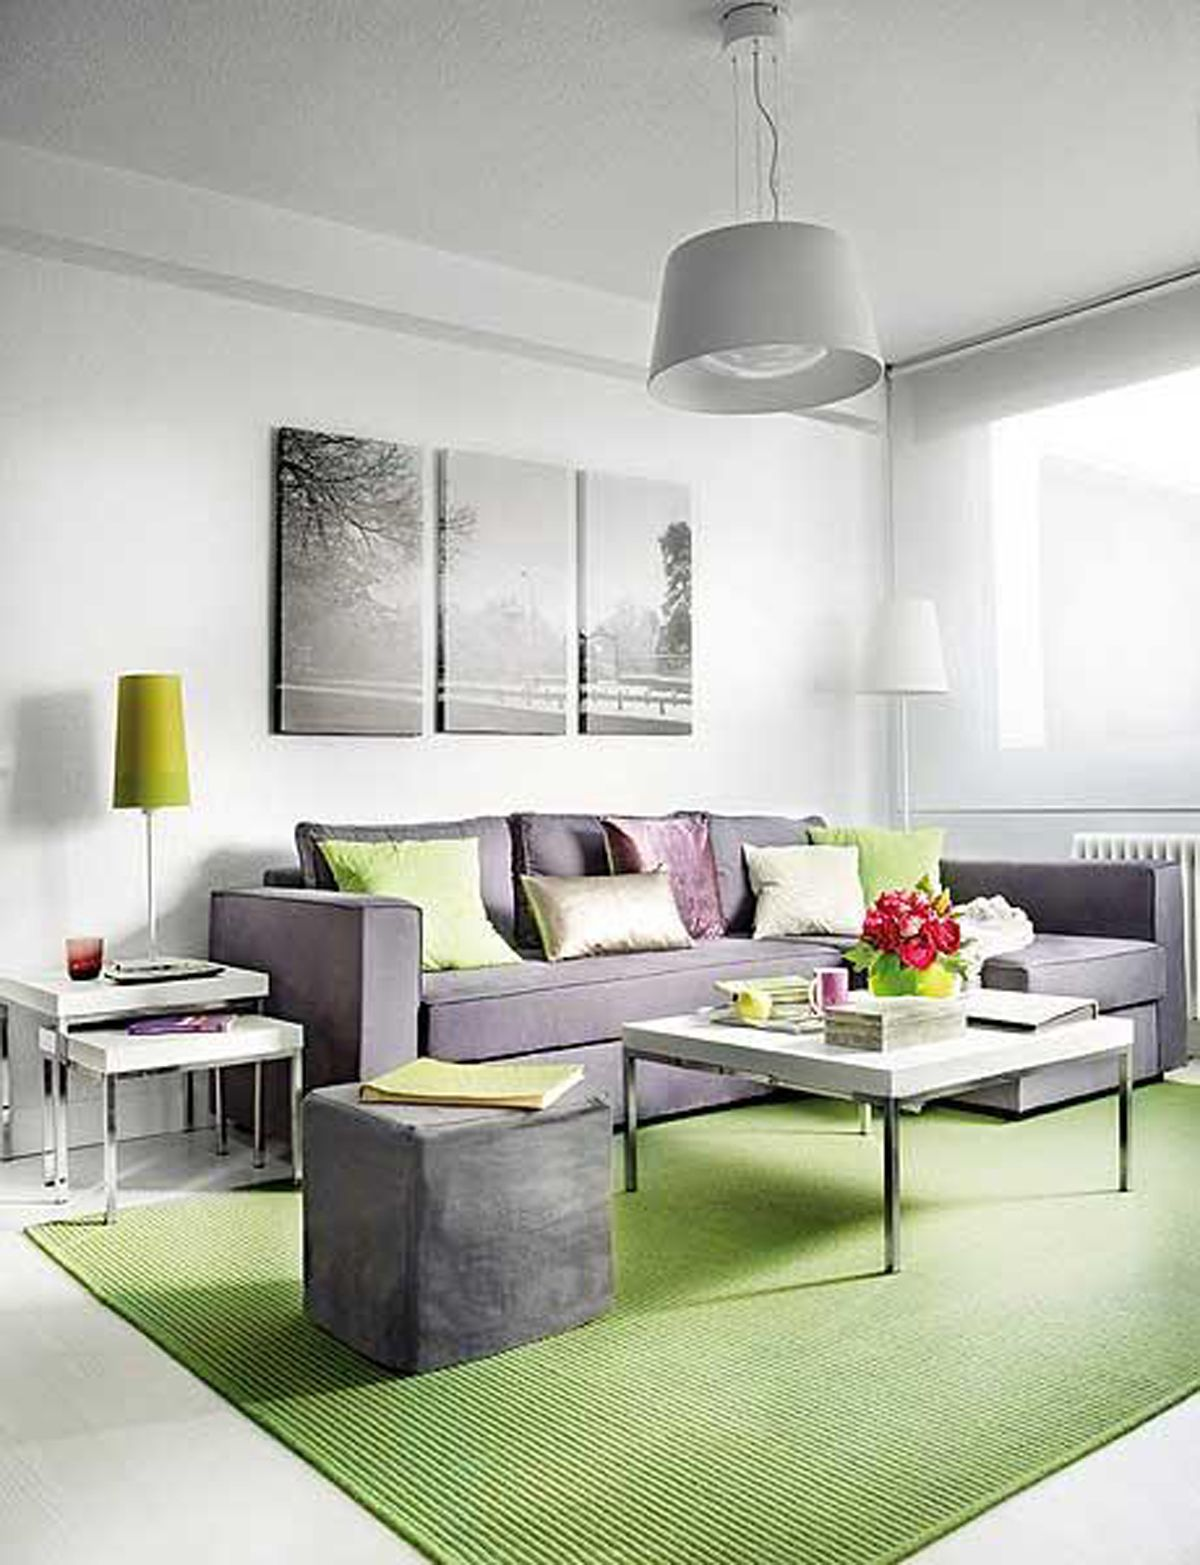 28 Best Small Living Room Ideas  Small Living Small Living Rooms Adorable Small Space Living Room Design Design Decoration